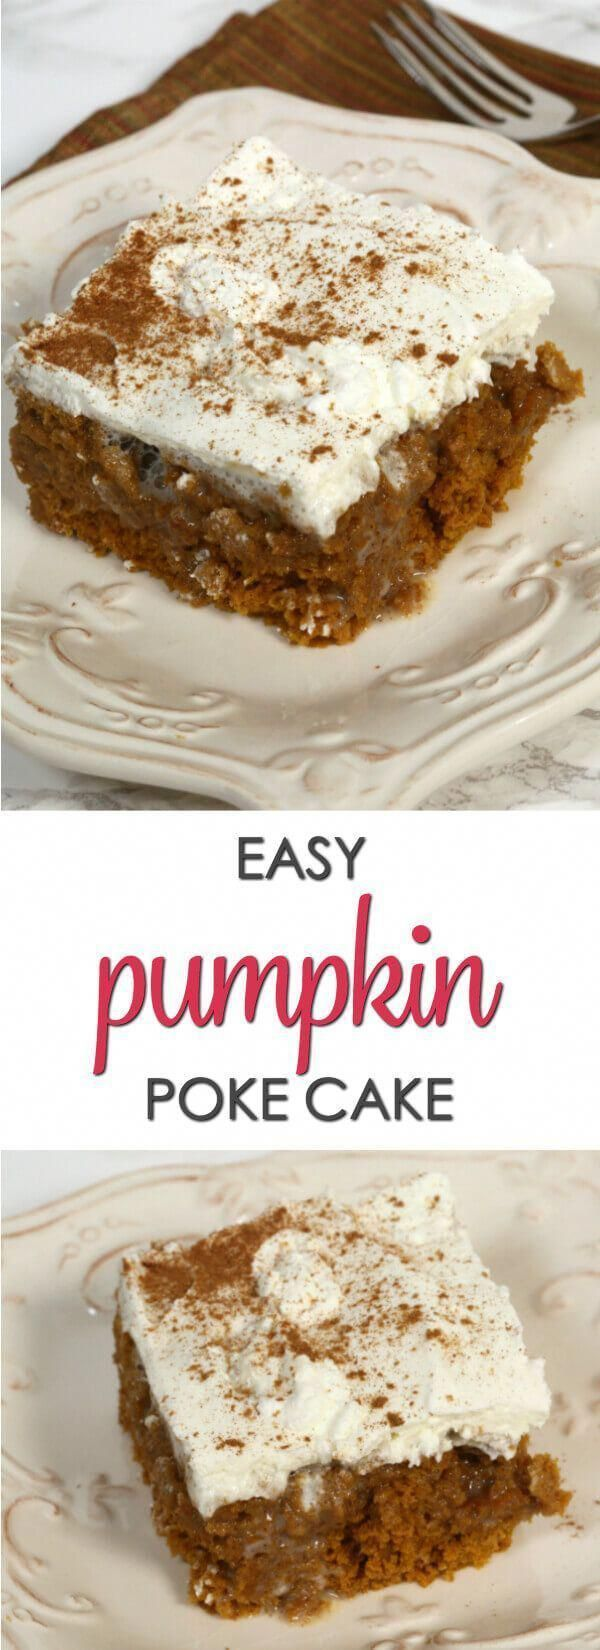 This is one of the best Pumpkin Poke Cake recipes with pockets of sweet, pumpkin..., #Cake #pockets #Poke #Pumpkin #Recipes #Sweet